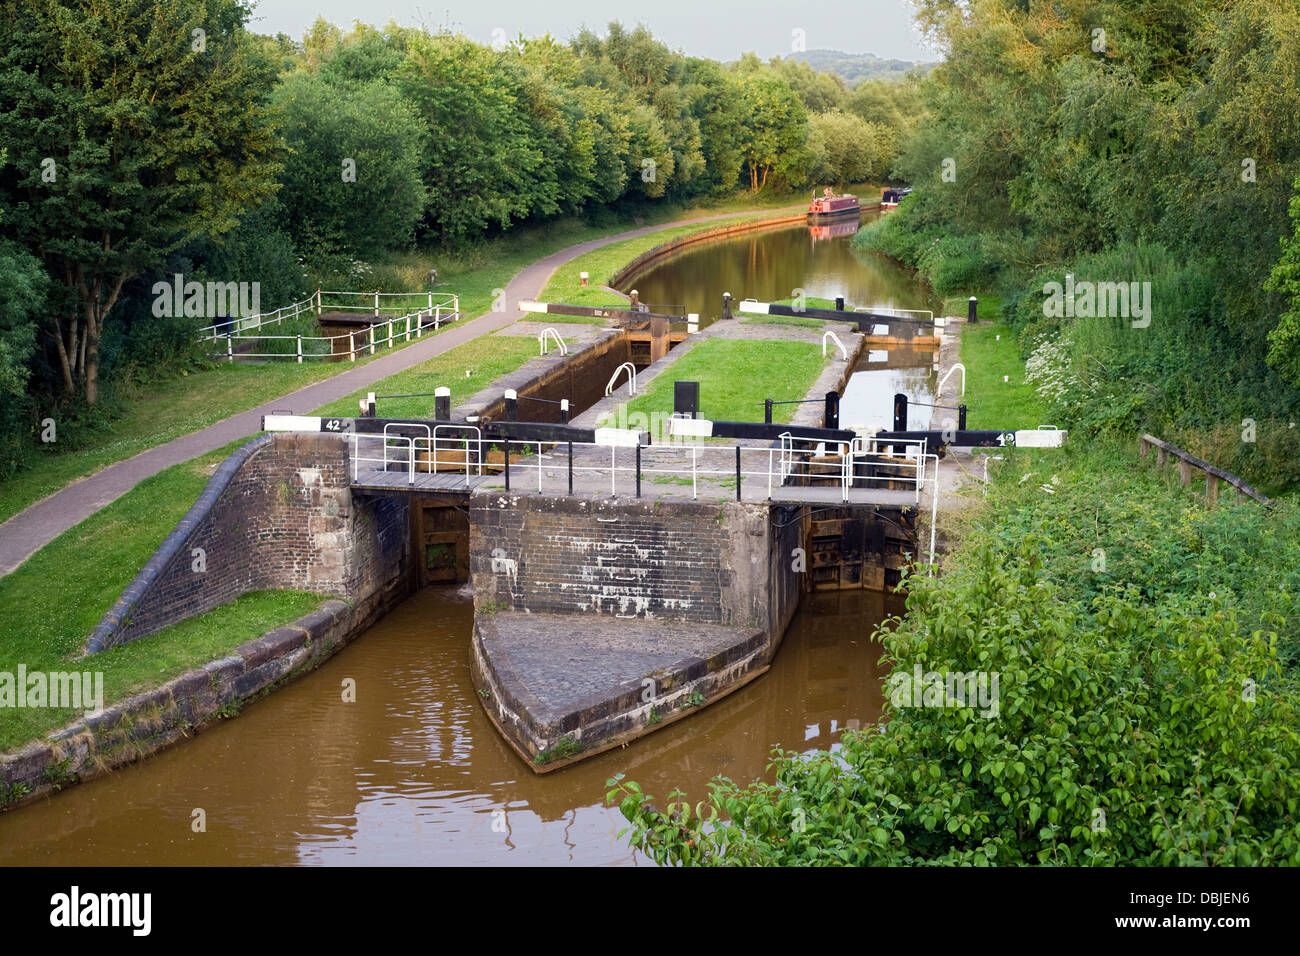 Duplex Lock, Trent and Mersey Canal. - Stock Image